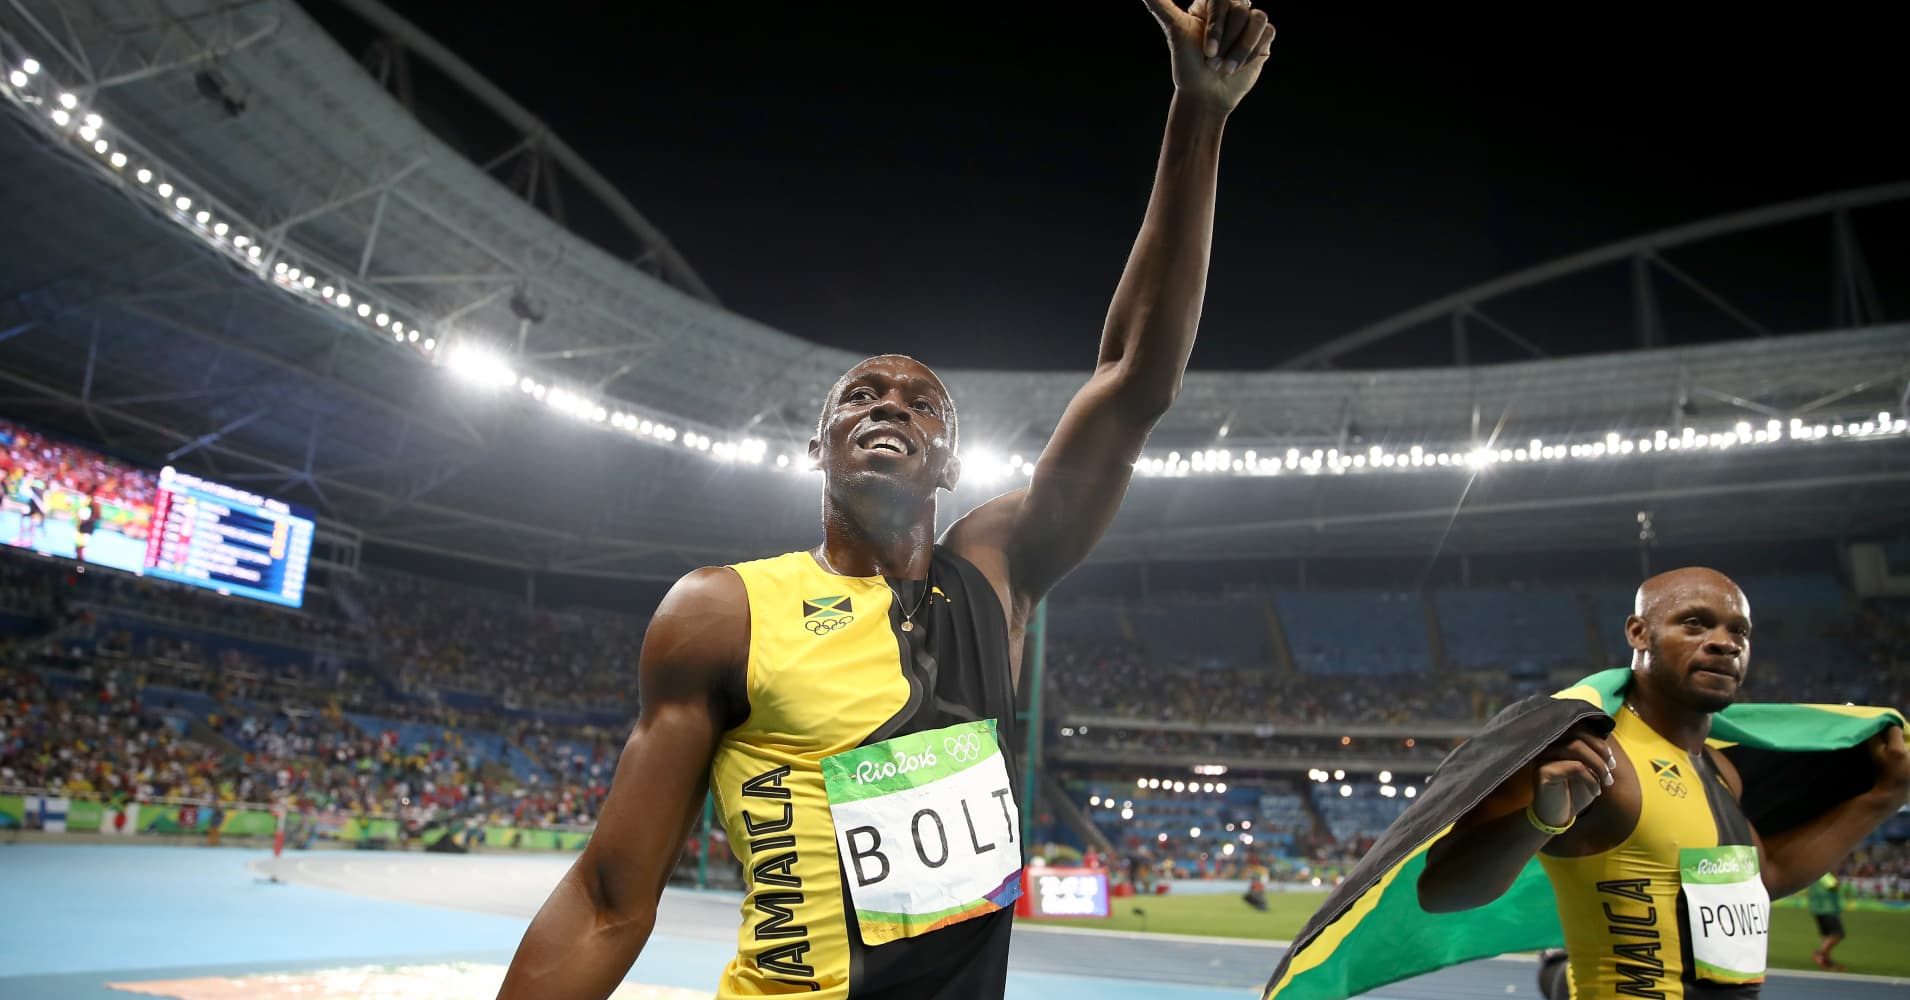 Usain Bolt's soccer dream could be gathering pace with a reported professional contract offer